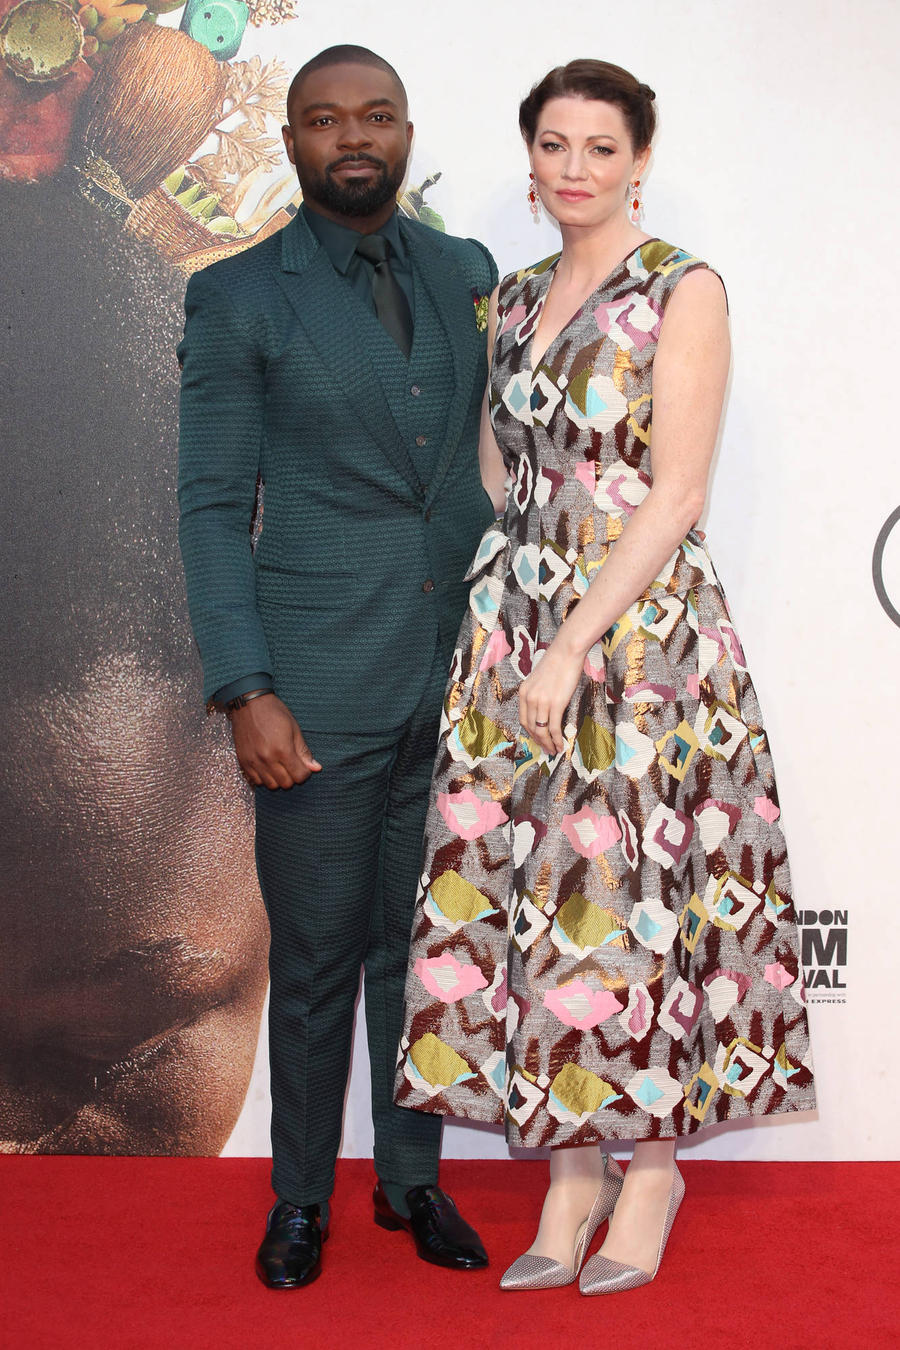 David Oyelowo's Wife Was Not Happy About His Romance In A United Kingdom